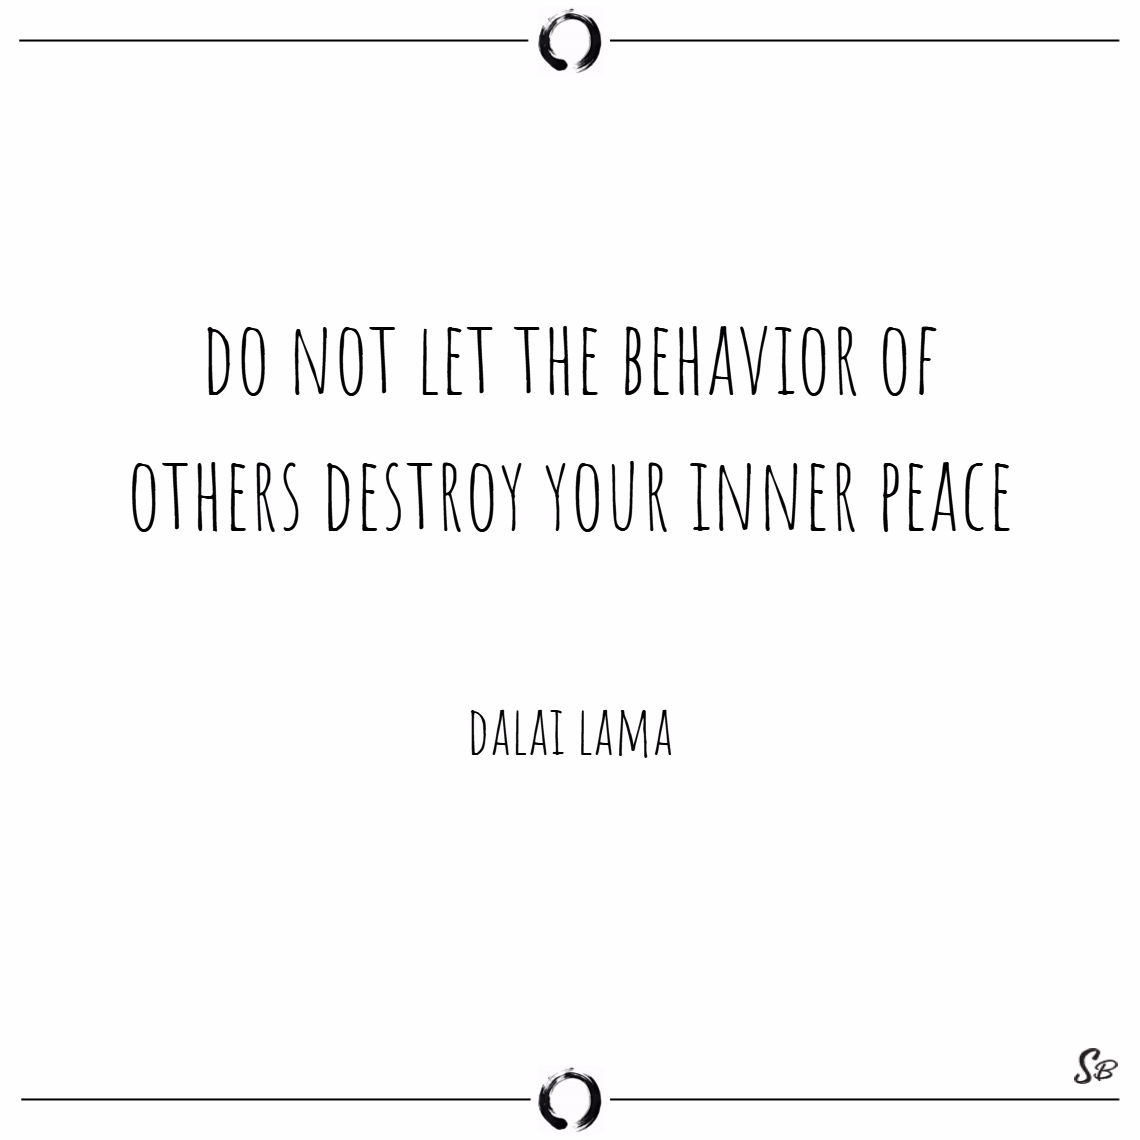 Do not let the behavior of others destroy your inner peace - peace of mind quotes